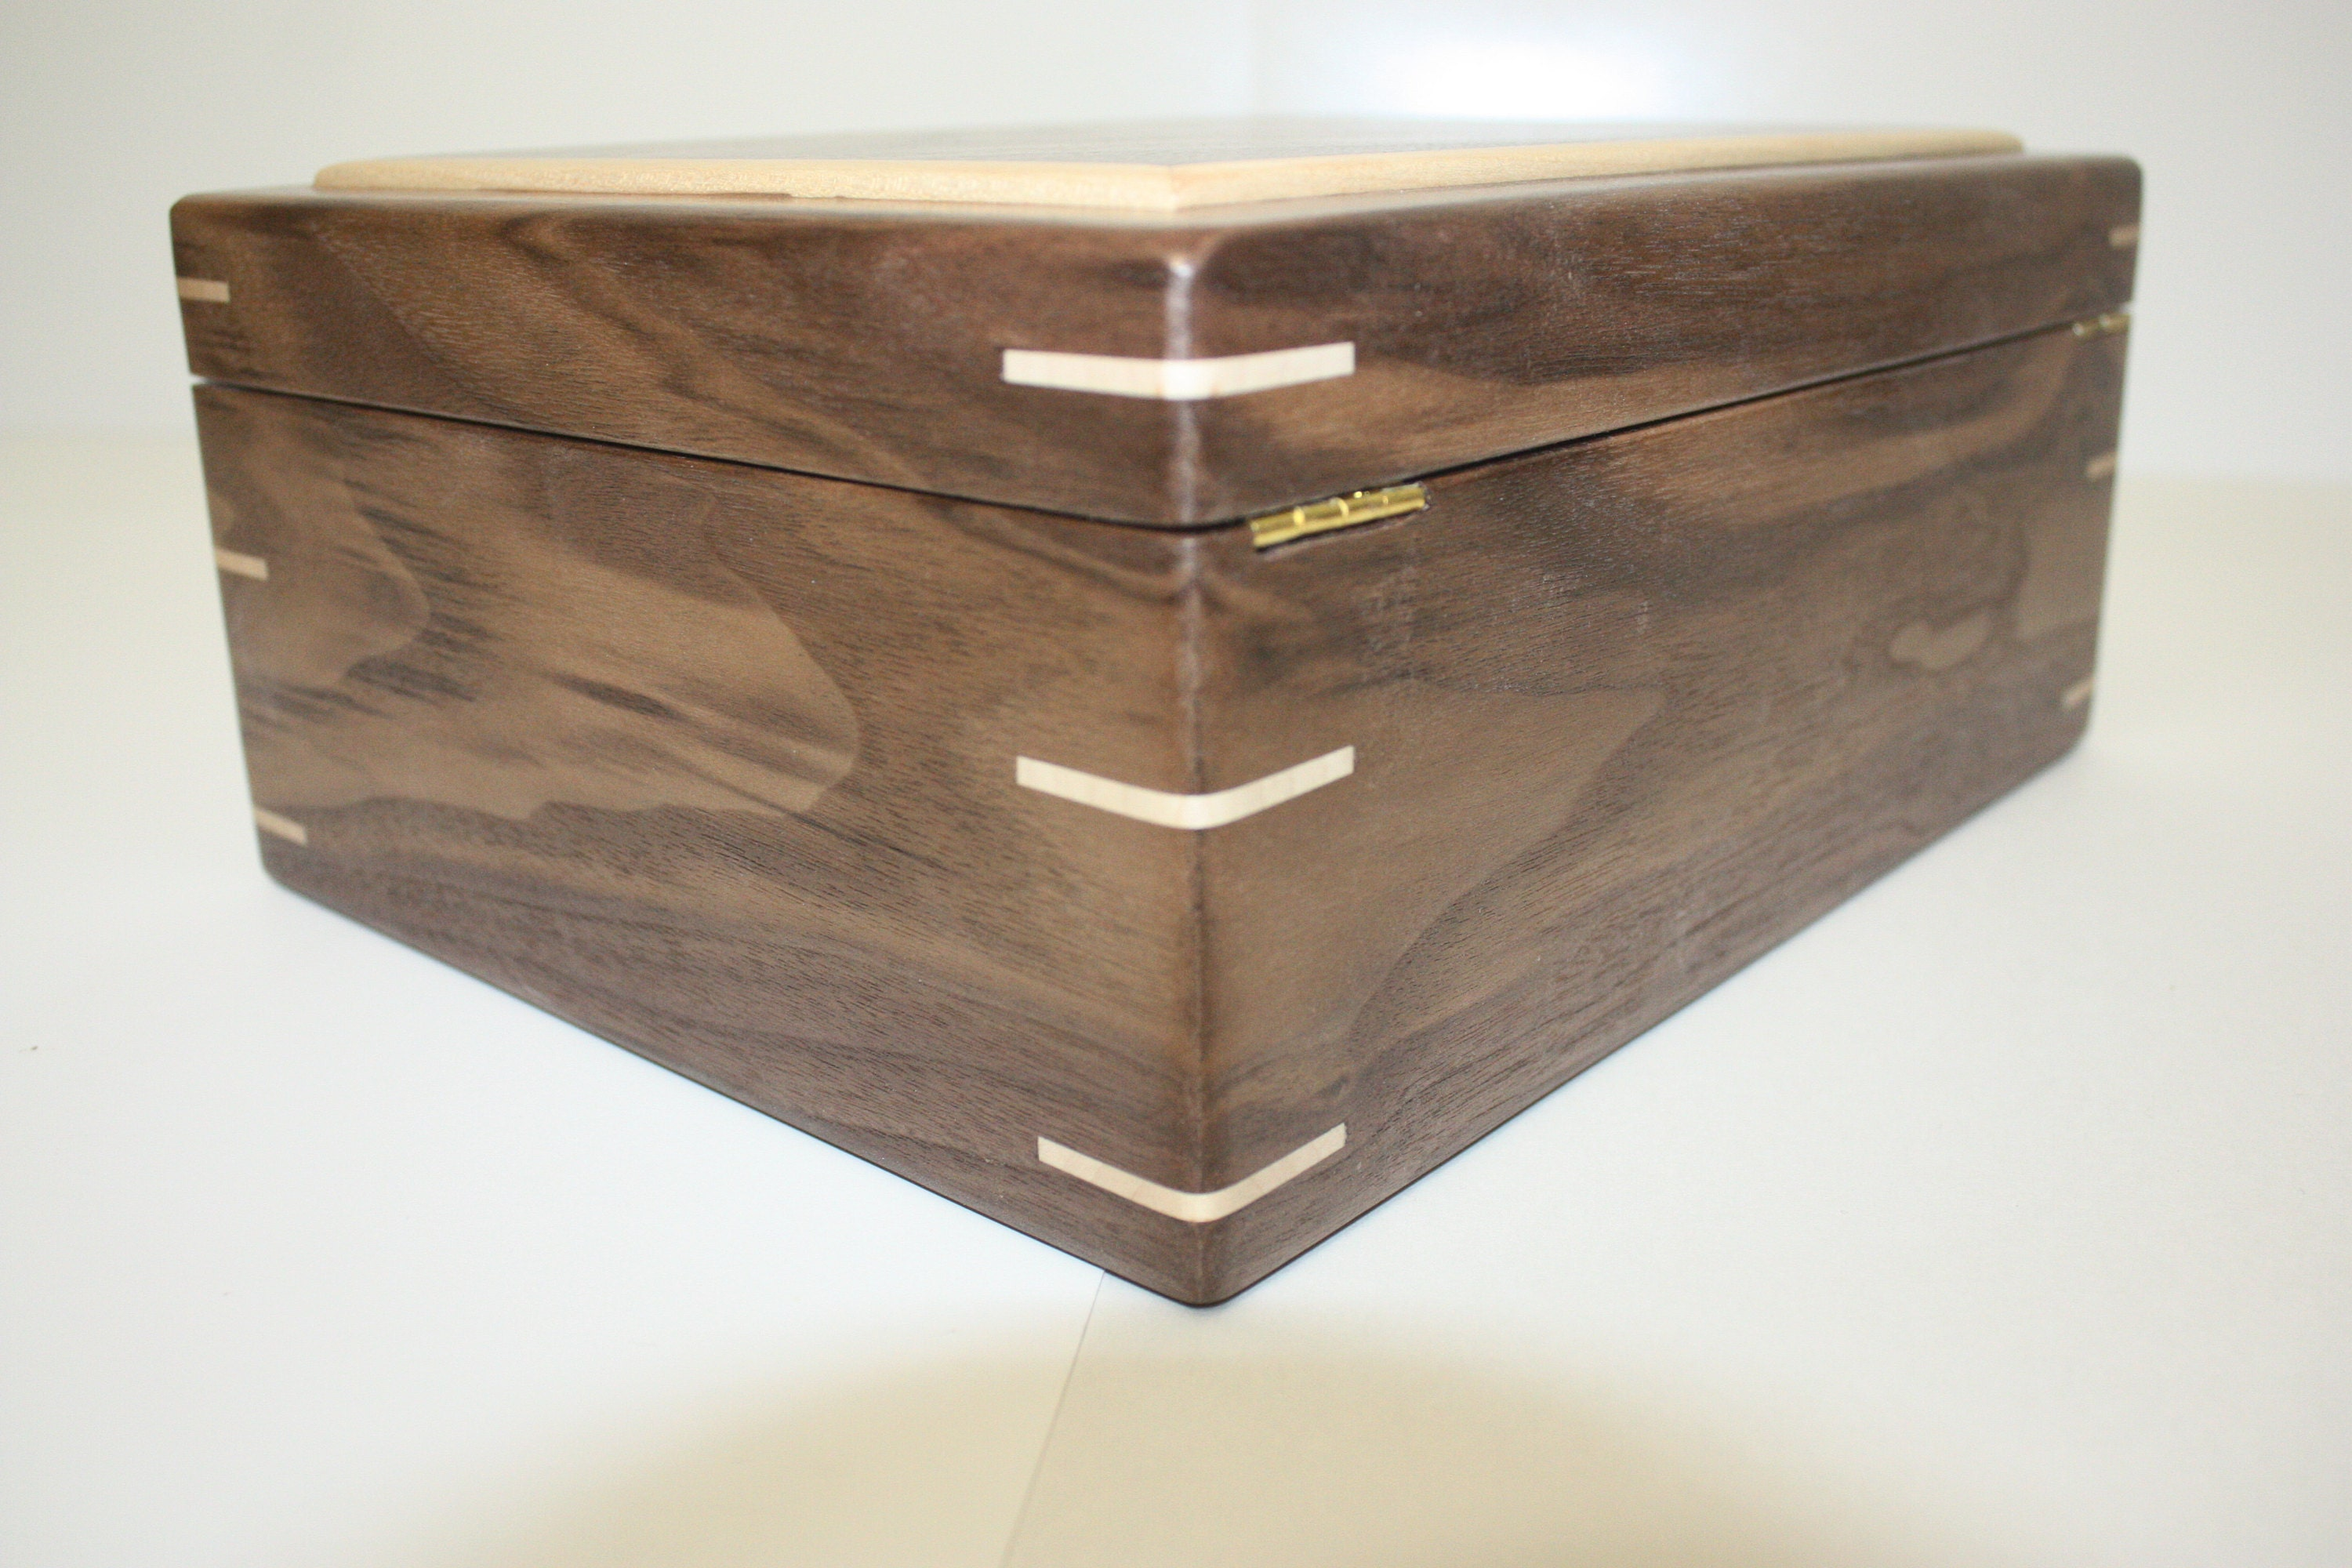 Handmade Box with Quadrant hinges